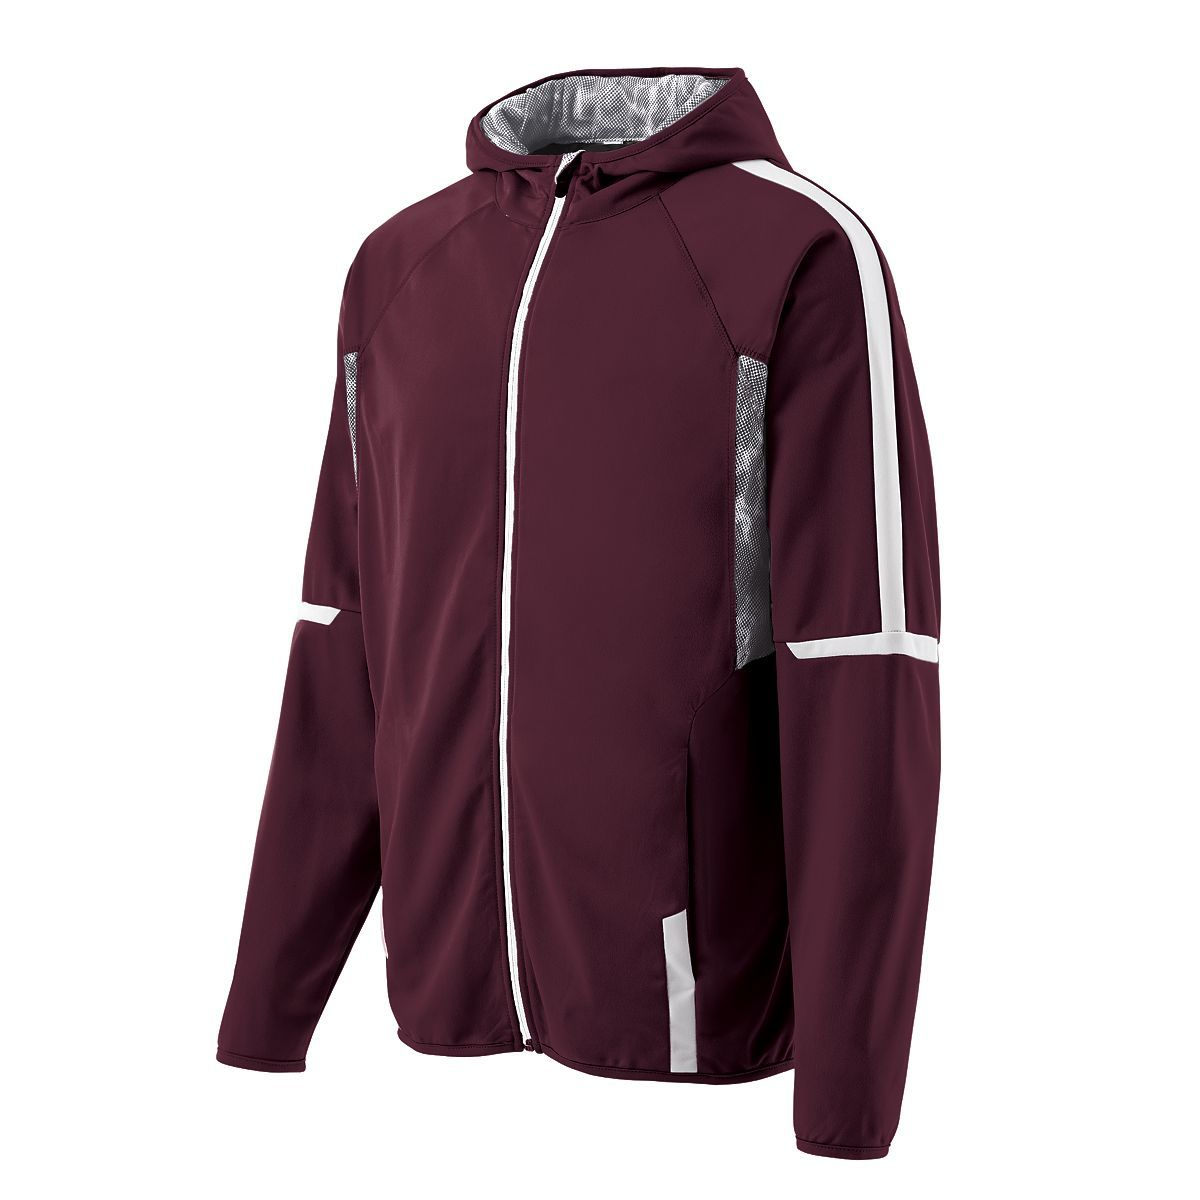 Youth Fortitude Jacket - Maroon/white/white Print